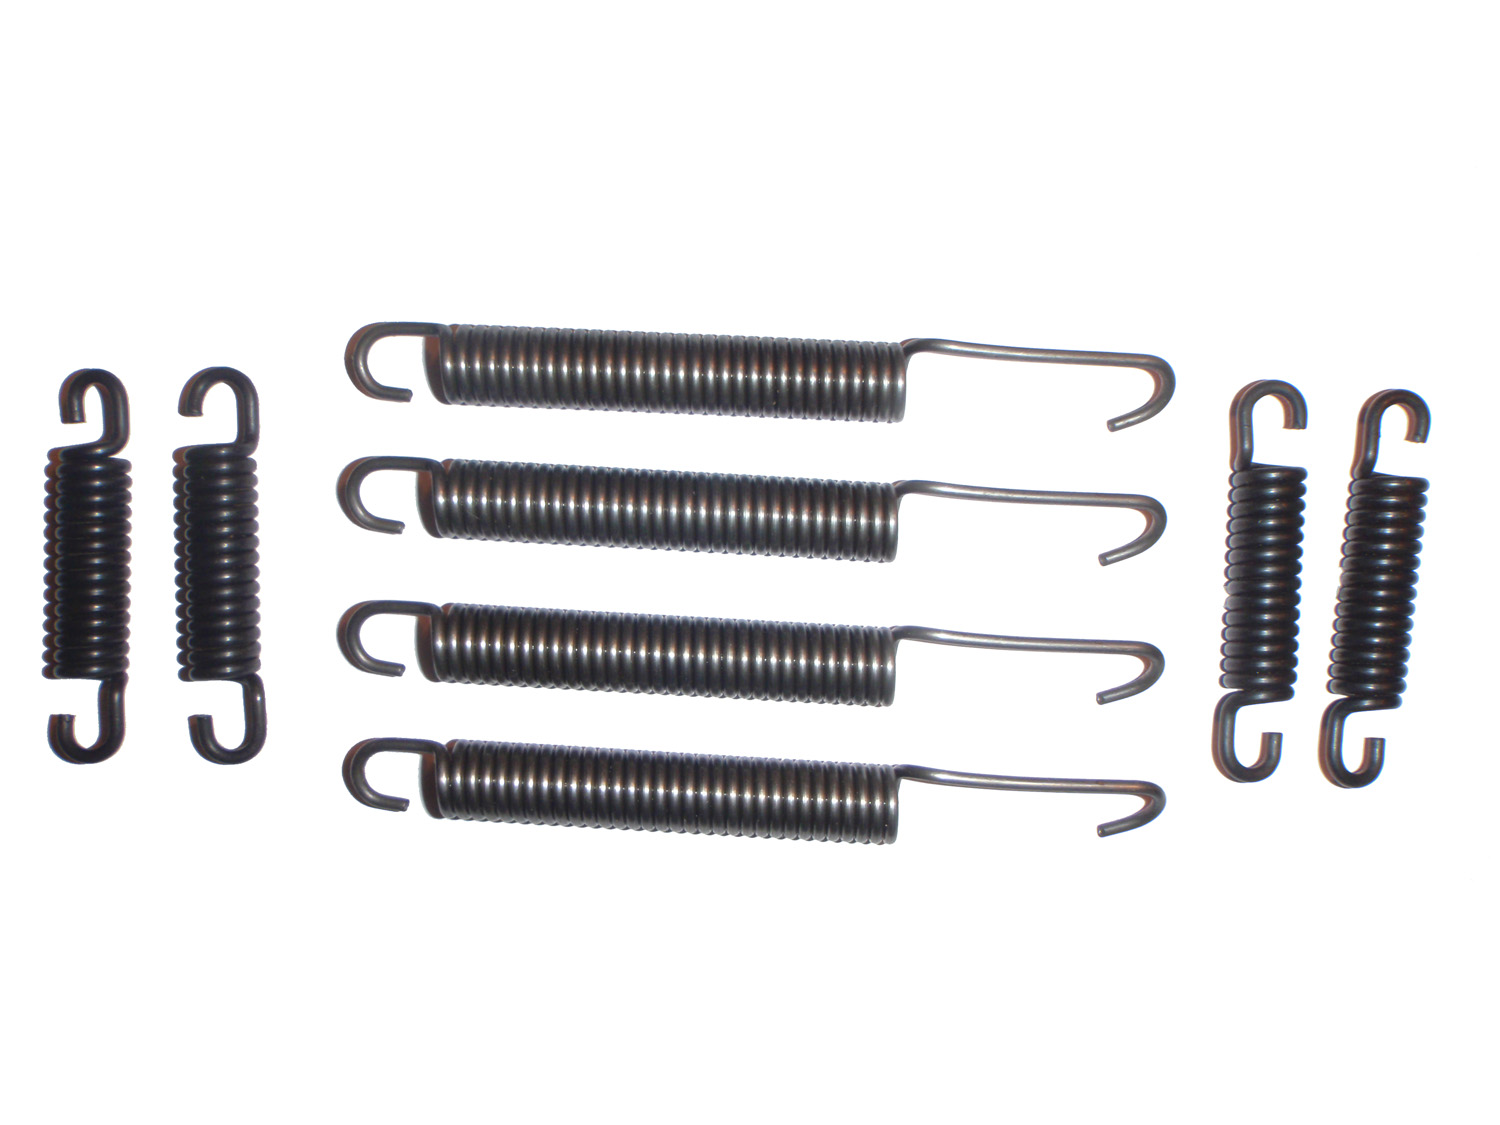 8 Brake Shoe Return Springs Kaiser Frazer